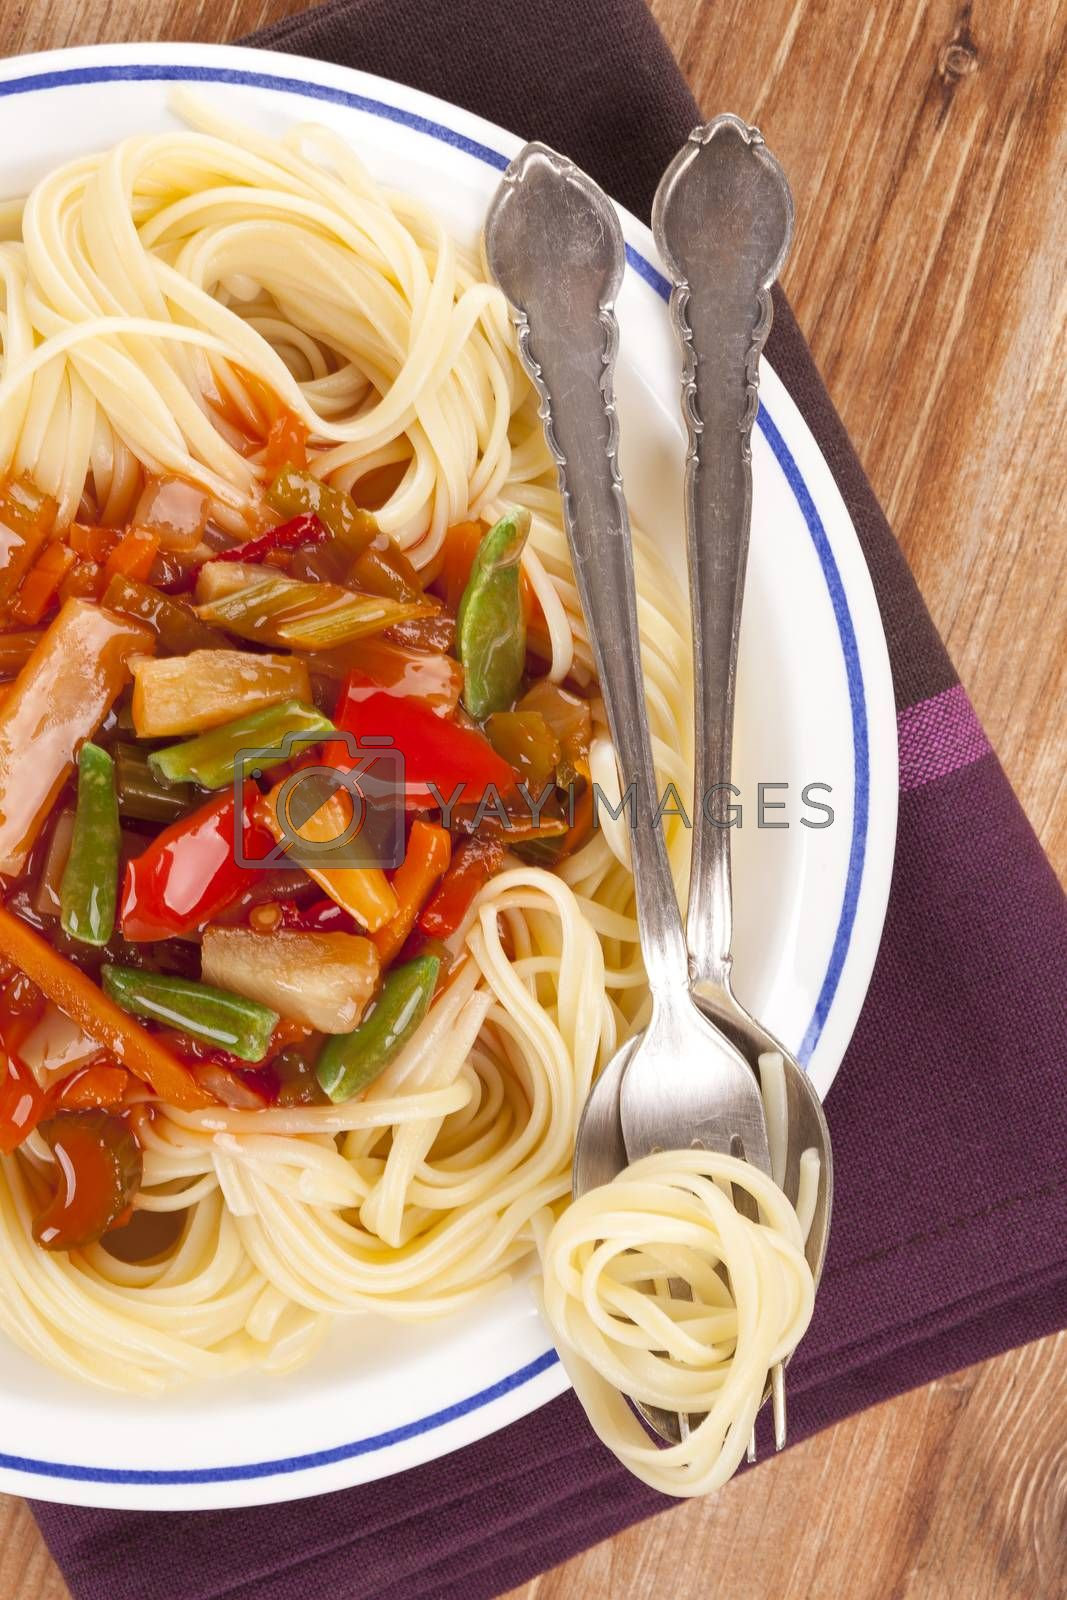 Culinary pasta eating. Pasta with tomato vegetable sauce on plate with cutlery on wooden background, top view.